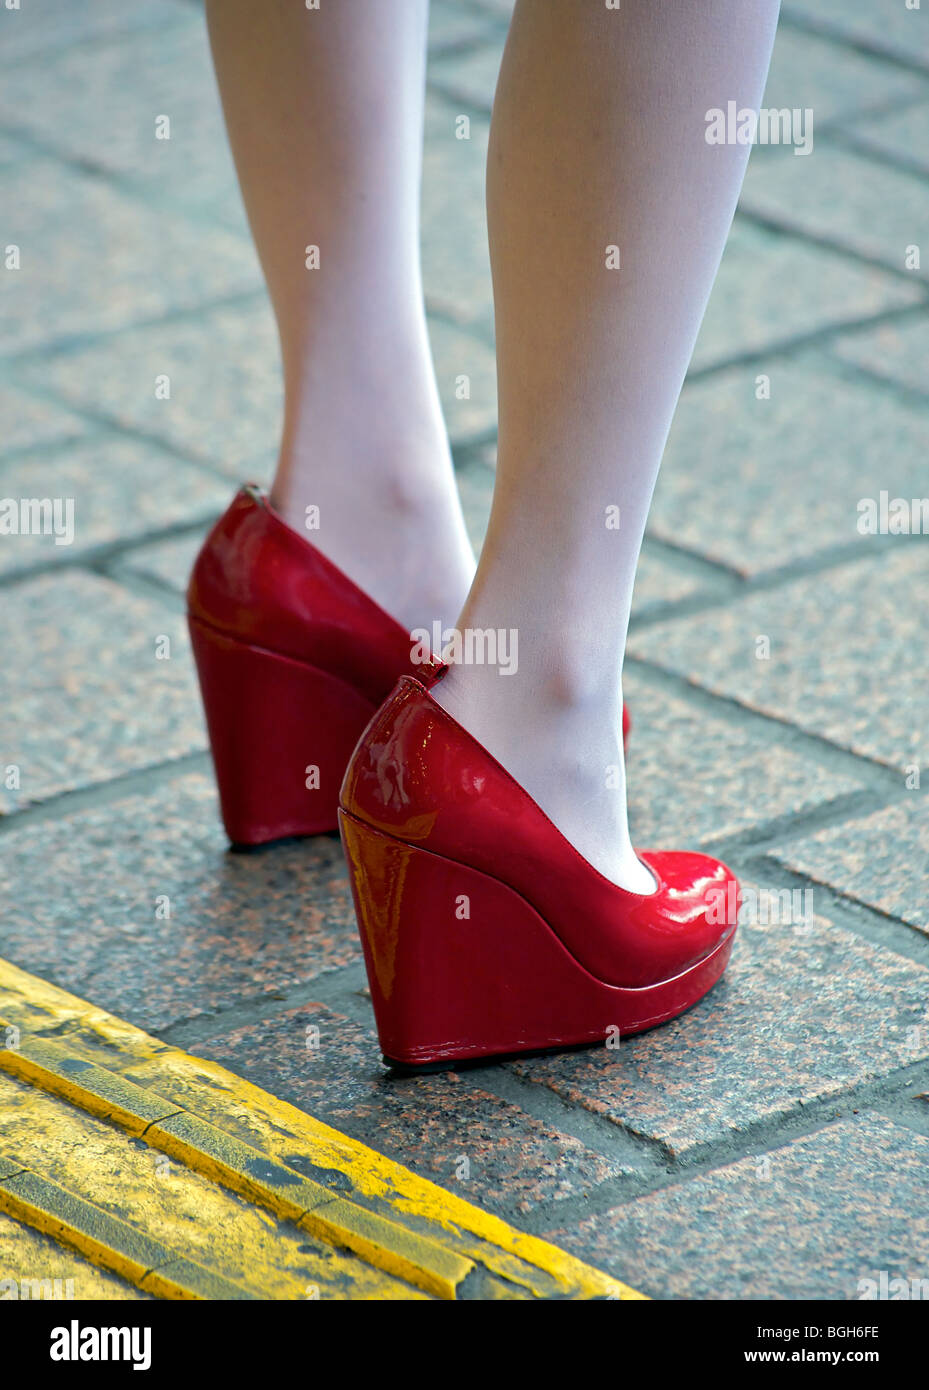 d19e2c6cb2c Bright red platform heels and white tights